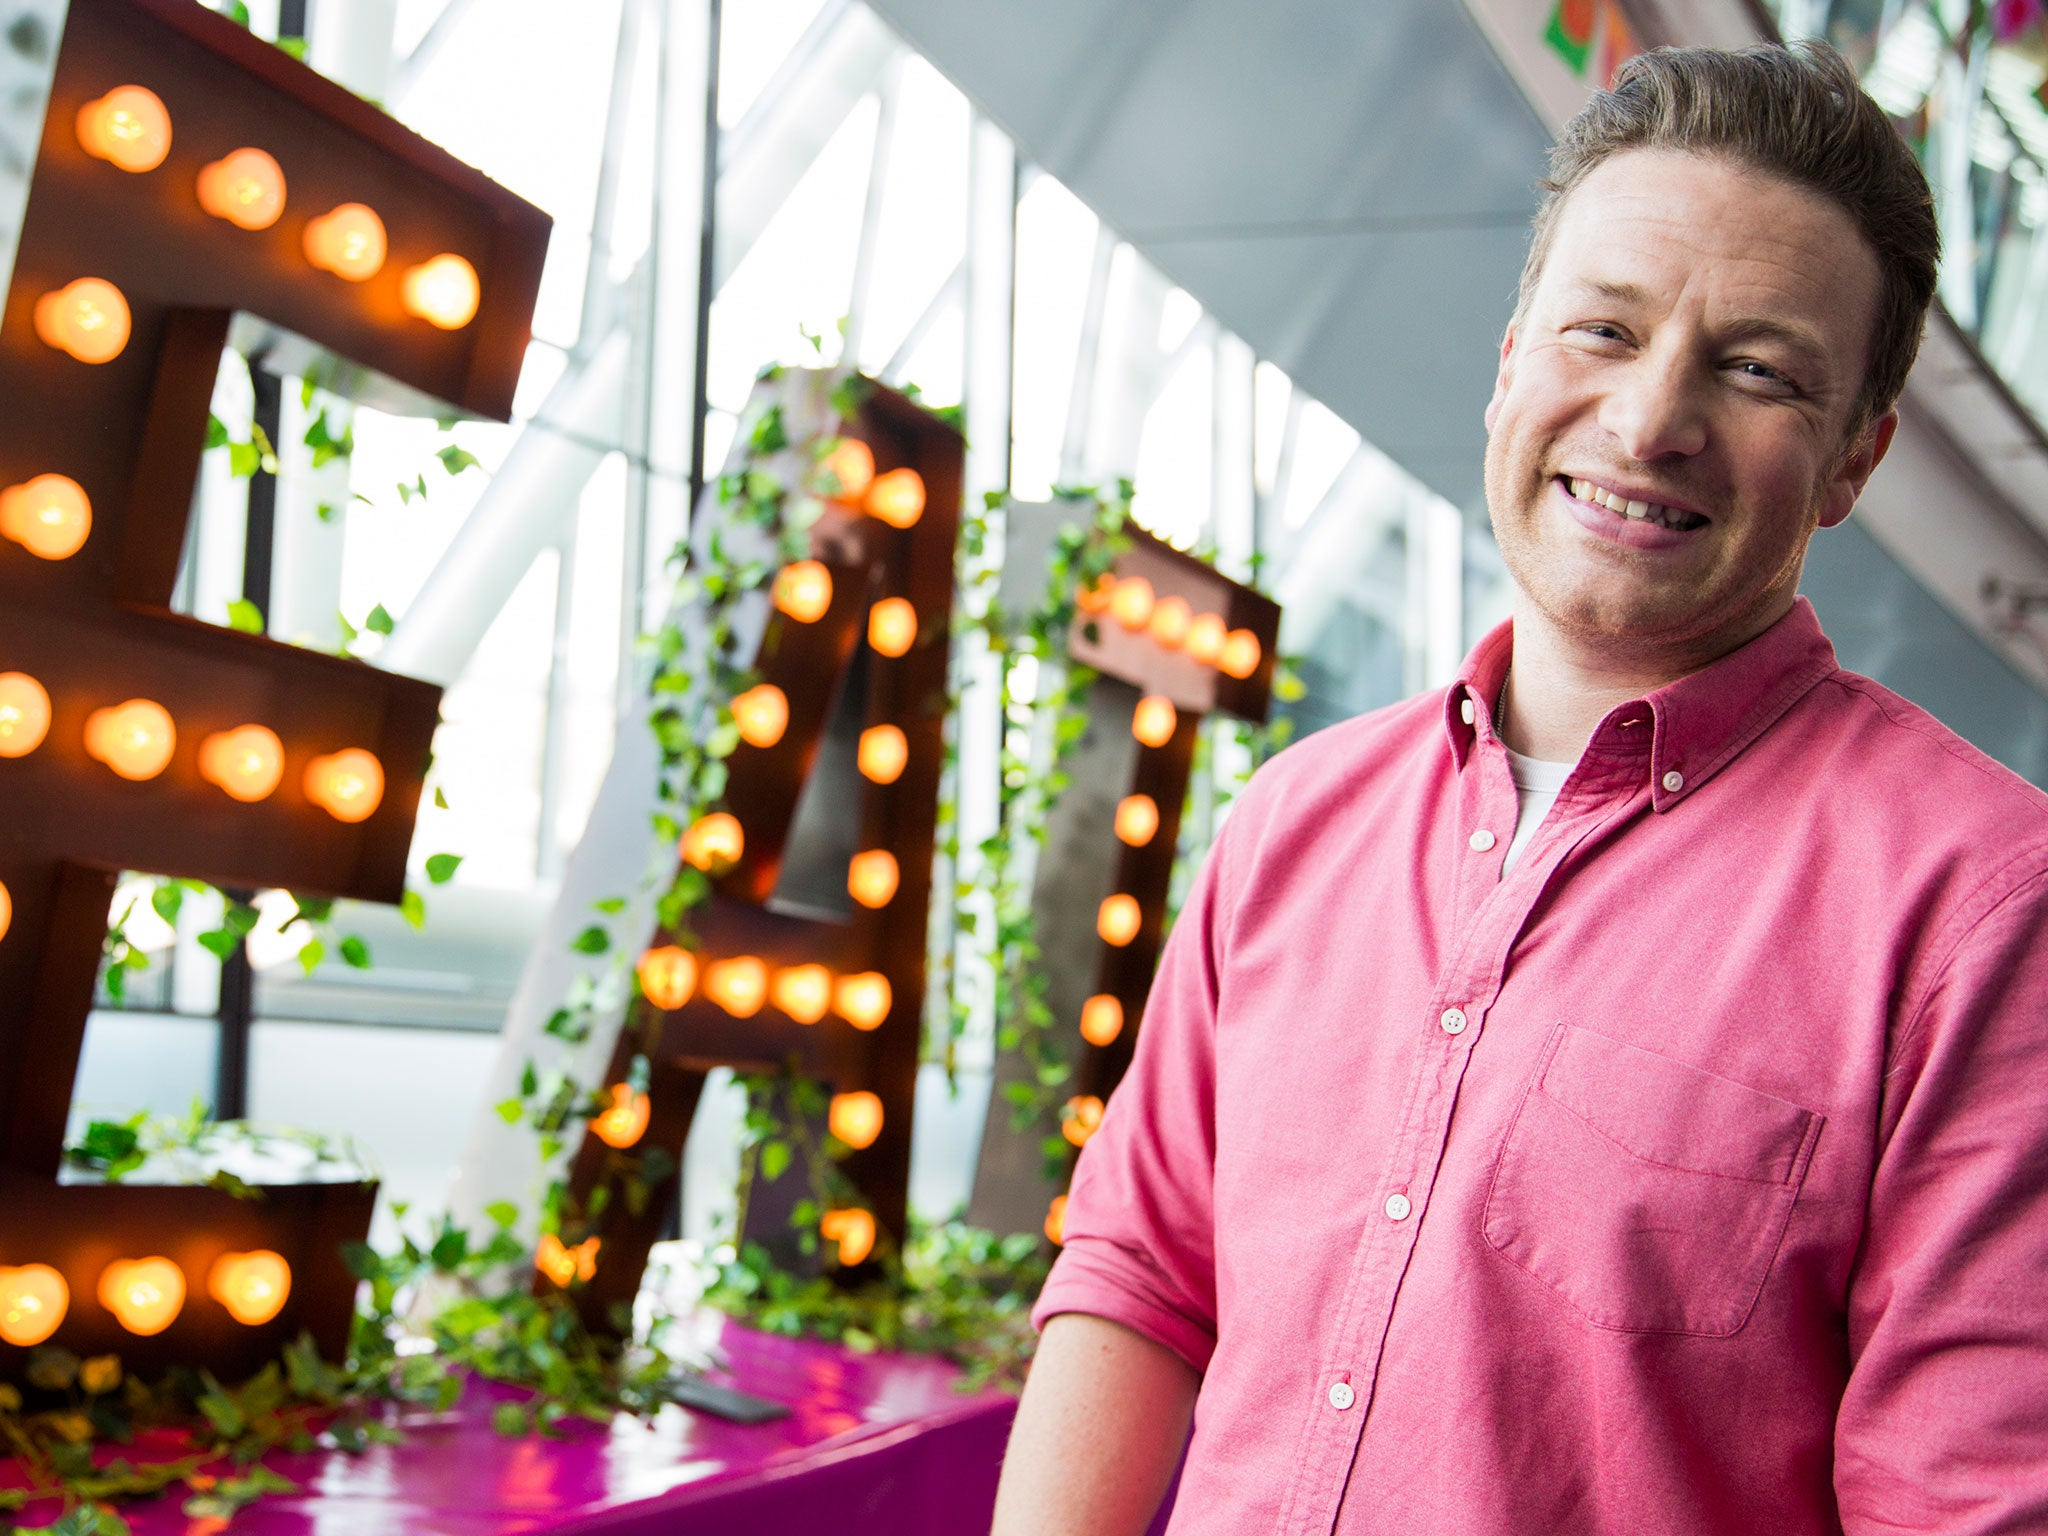 jamie oliver 39 s ministry of food cooking courses work scientists say the independent. Black Bedroom Furniture Sets. Home Design Ideas